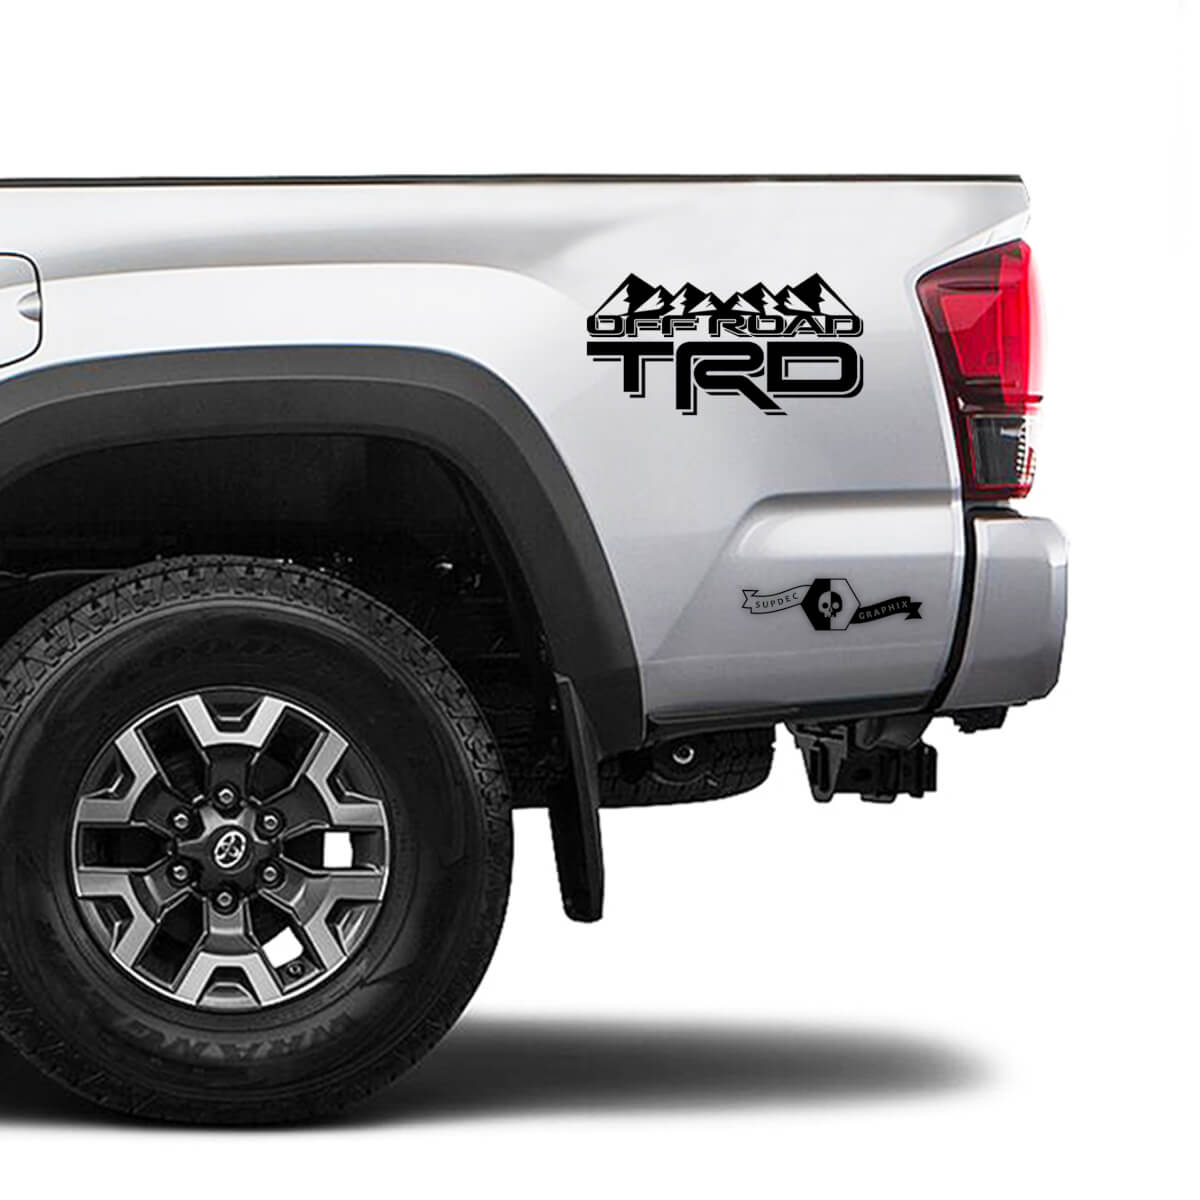 TRD 4x4 Off Road TOYOTA Forest Mountains Decals Stickers for Tacoma Tundra 4Runner Hilux side